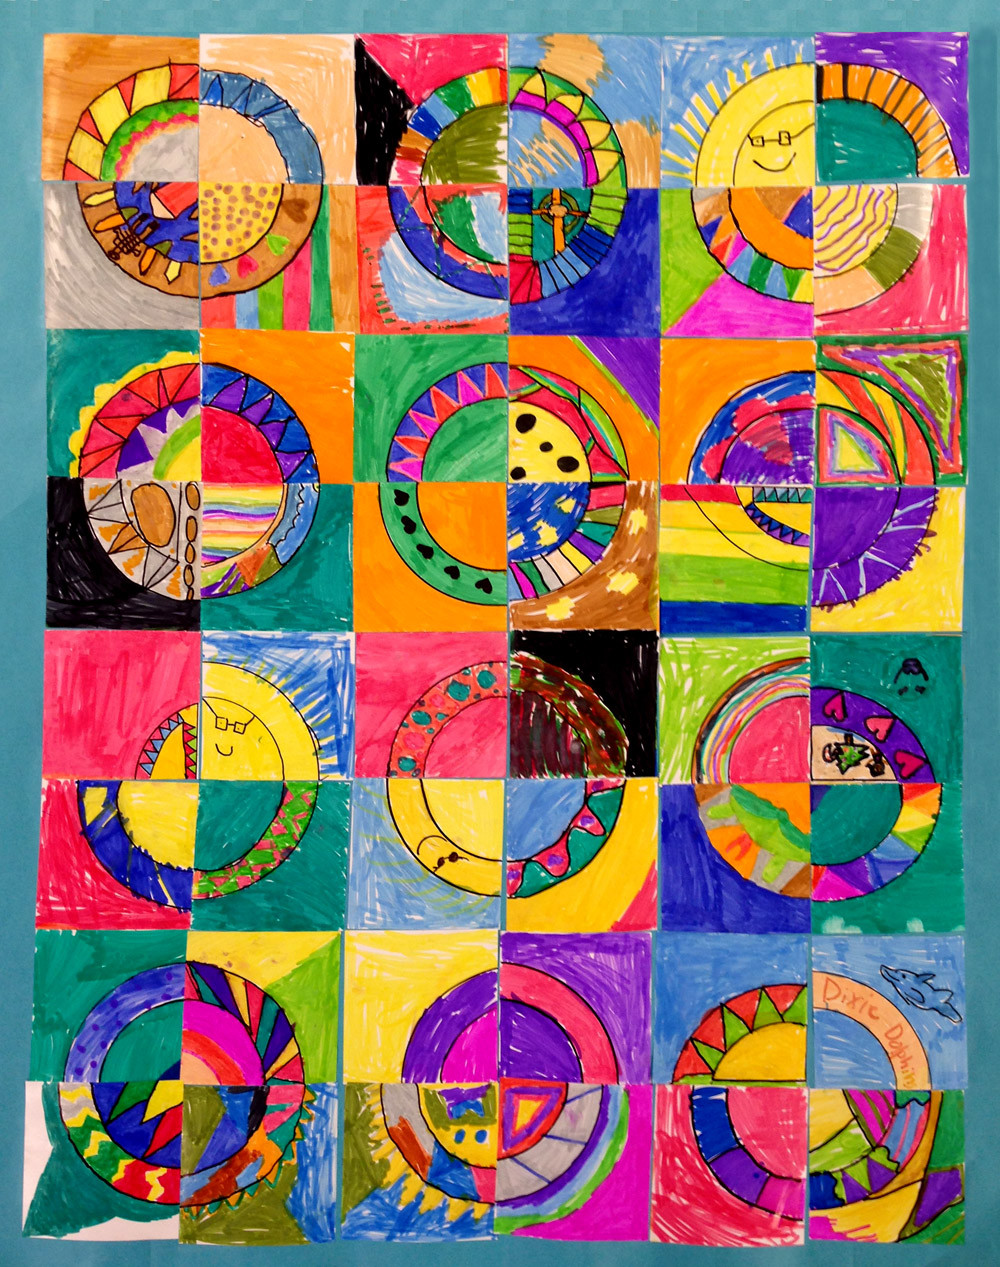 Best ideas about Art Projects For Kids . Save or Pin Paper Quilts Art Projects for Kids Now.